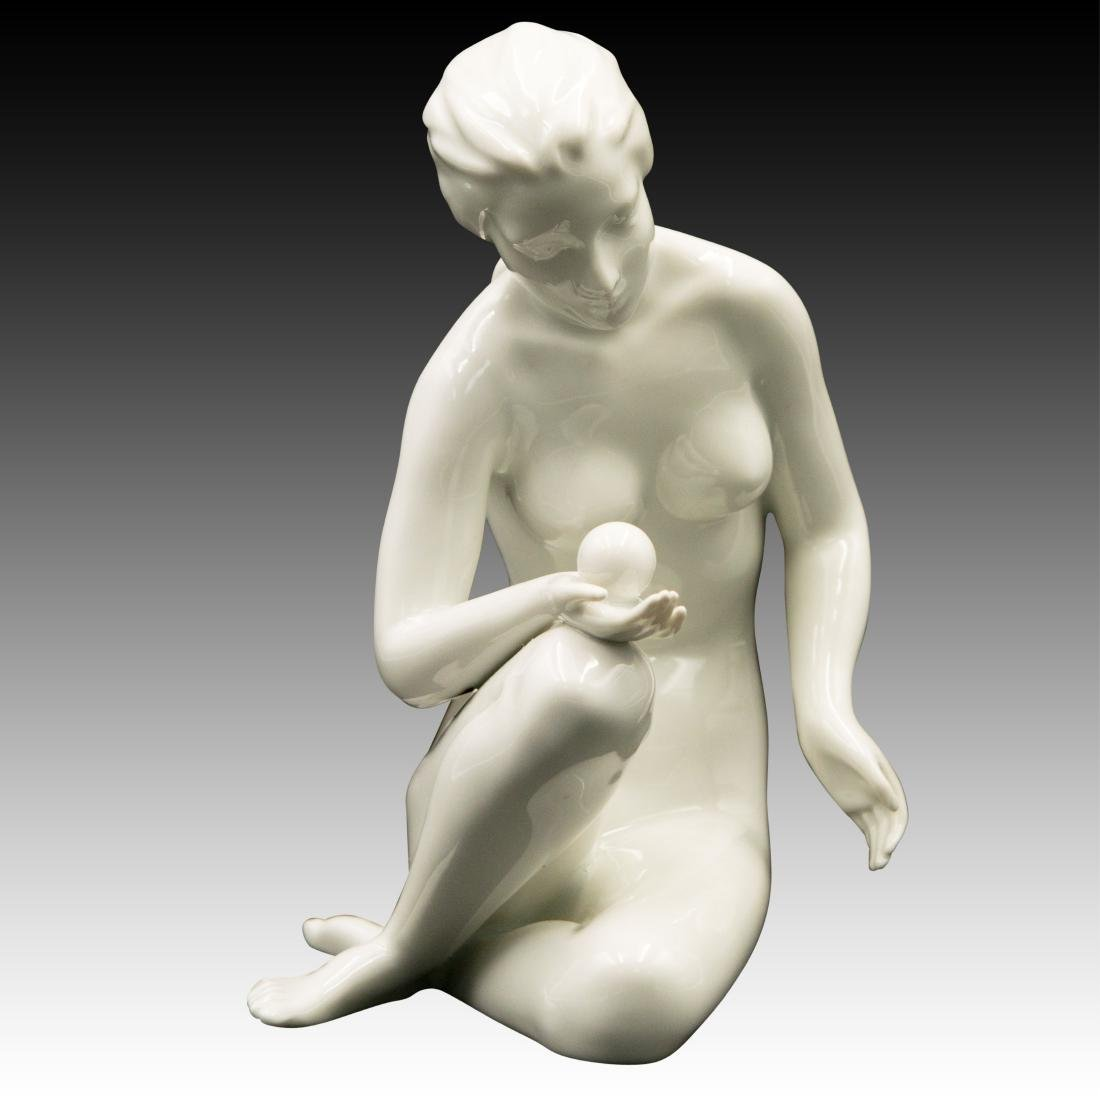 Royal Dux Nude Woman with a Ball Figurine